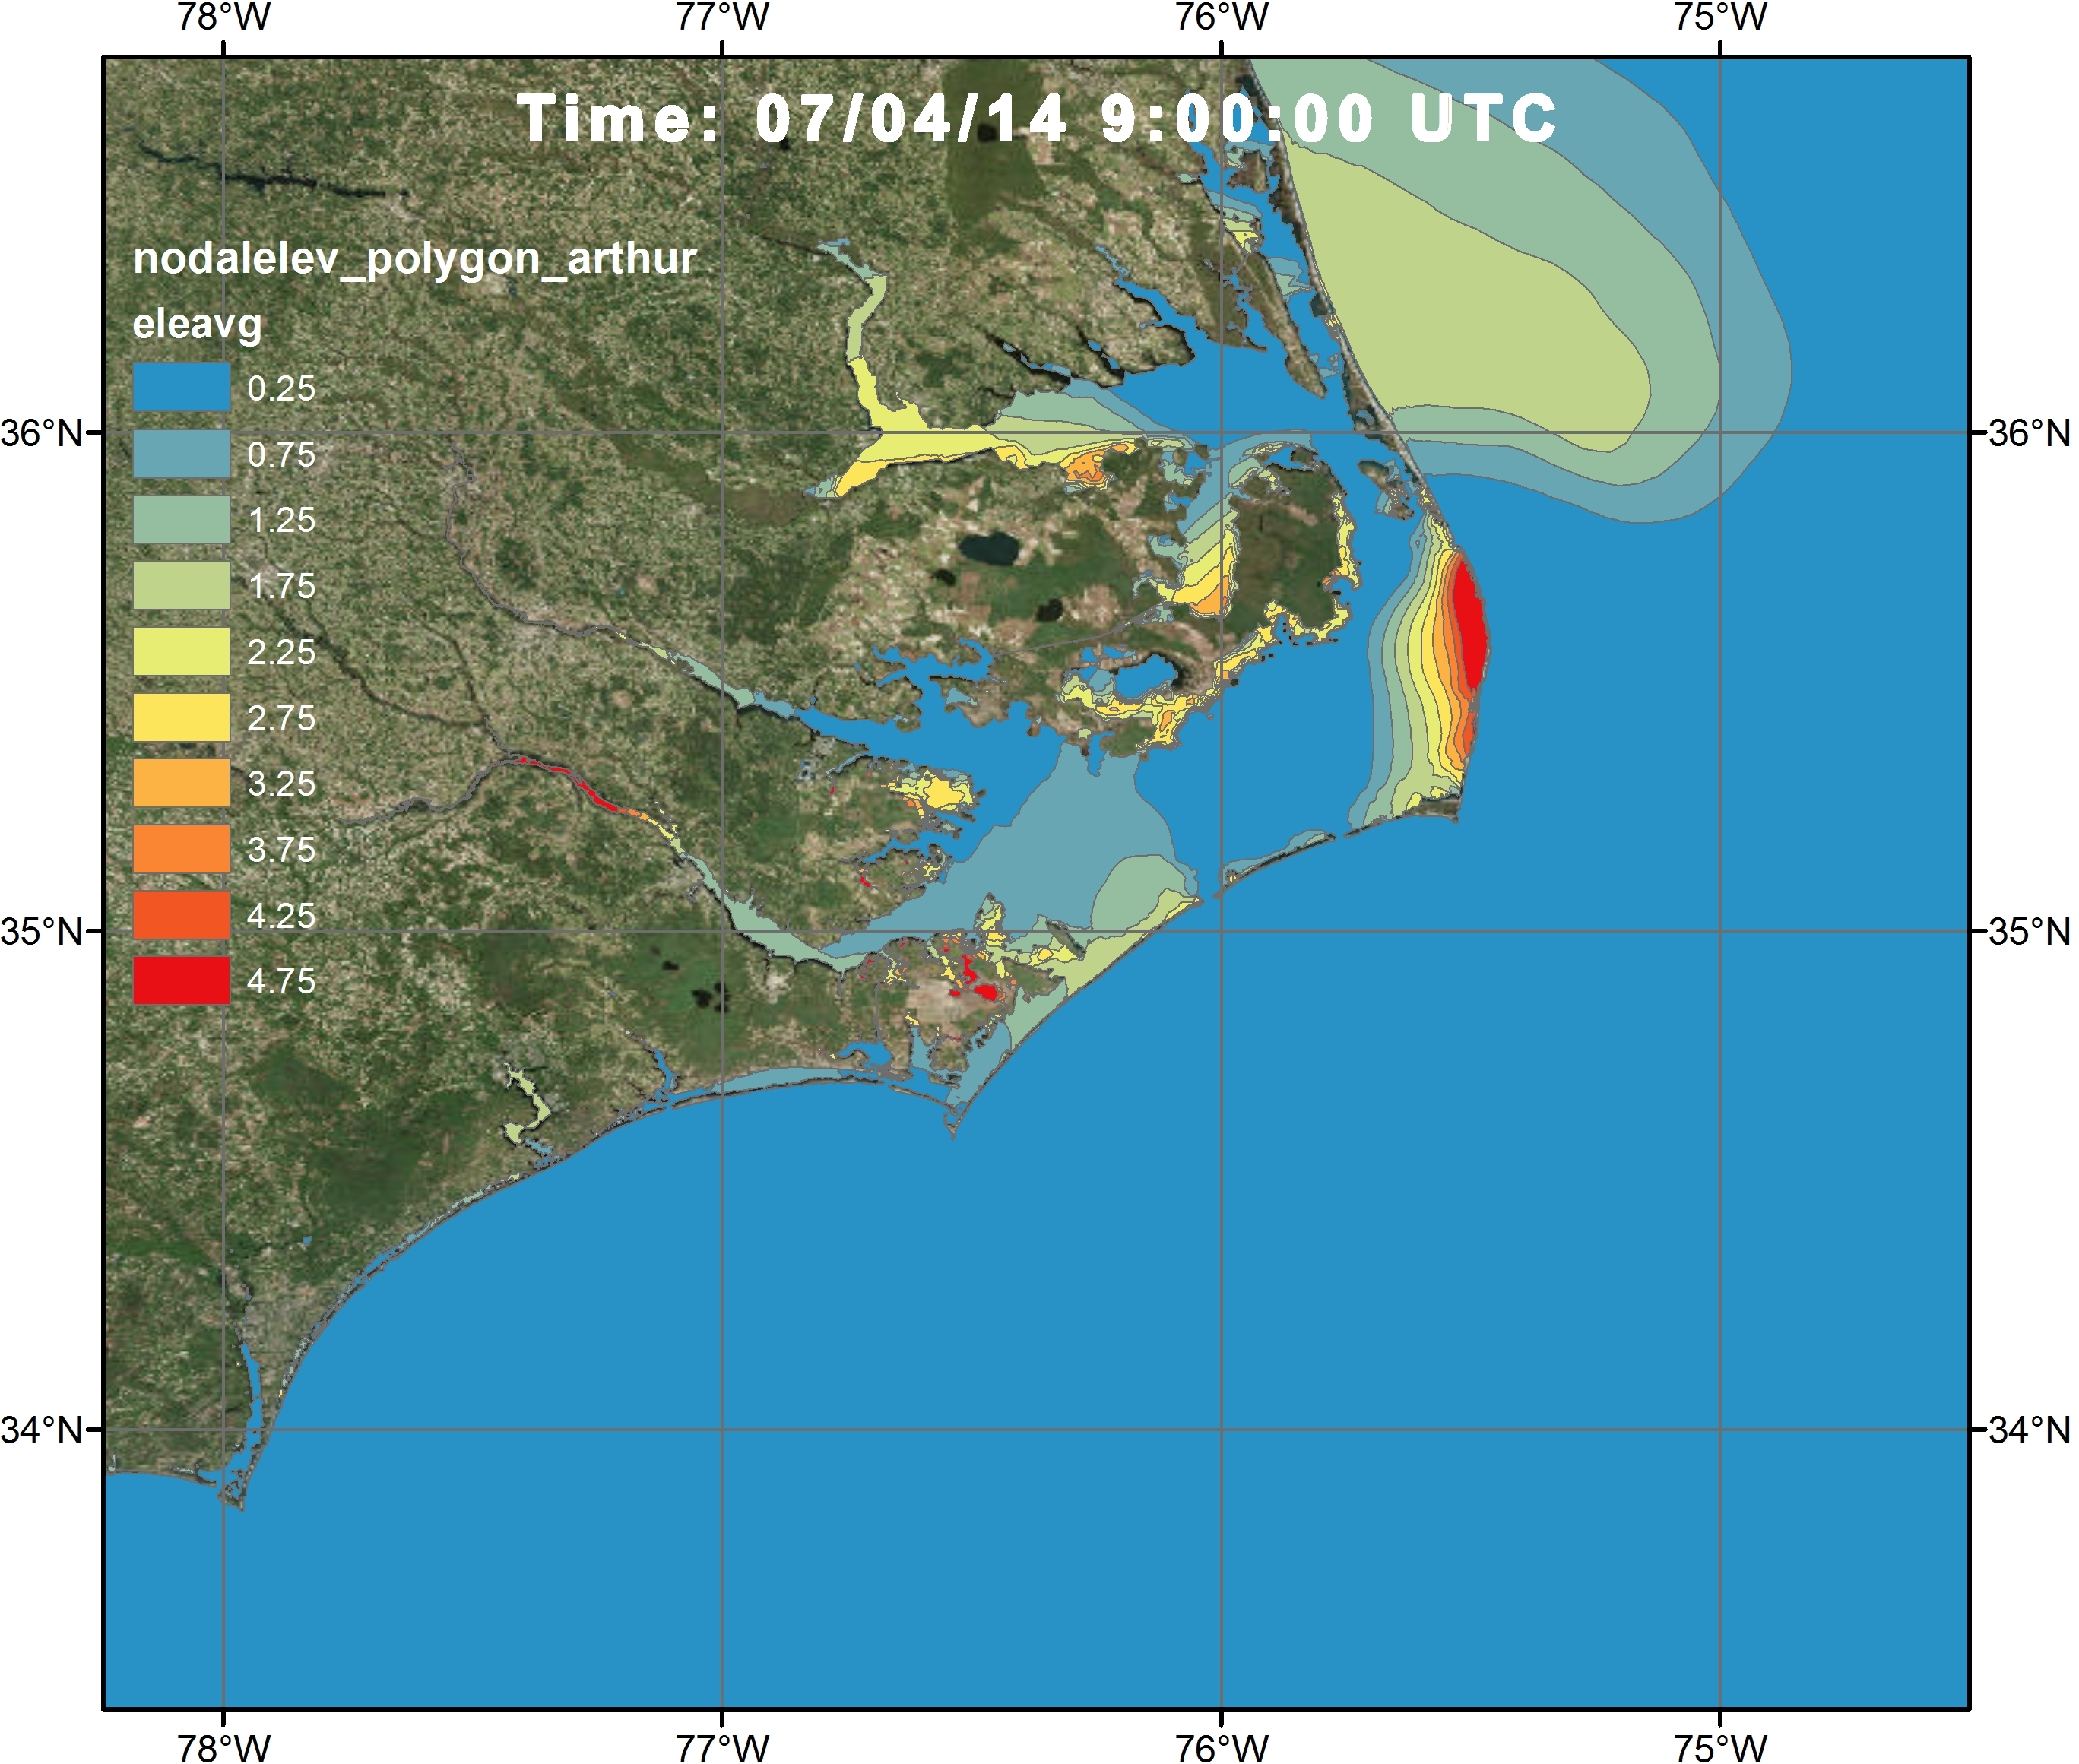 Example 1d: Visualization of the water levels during Hurricane Arthur Advisory 12 along the NC coast at 07/04/14 0900 UTC via a time varying shapefile with ArcGIS satellite Imagery